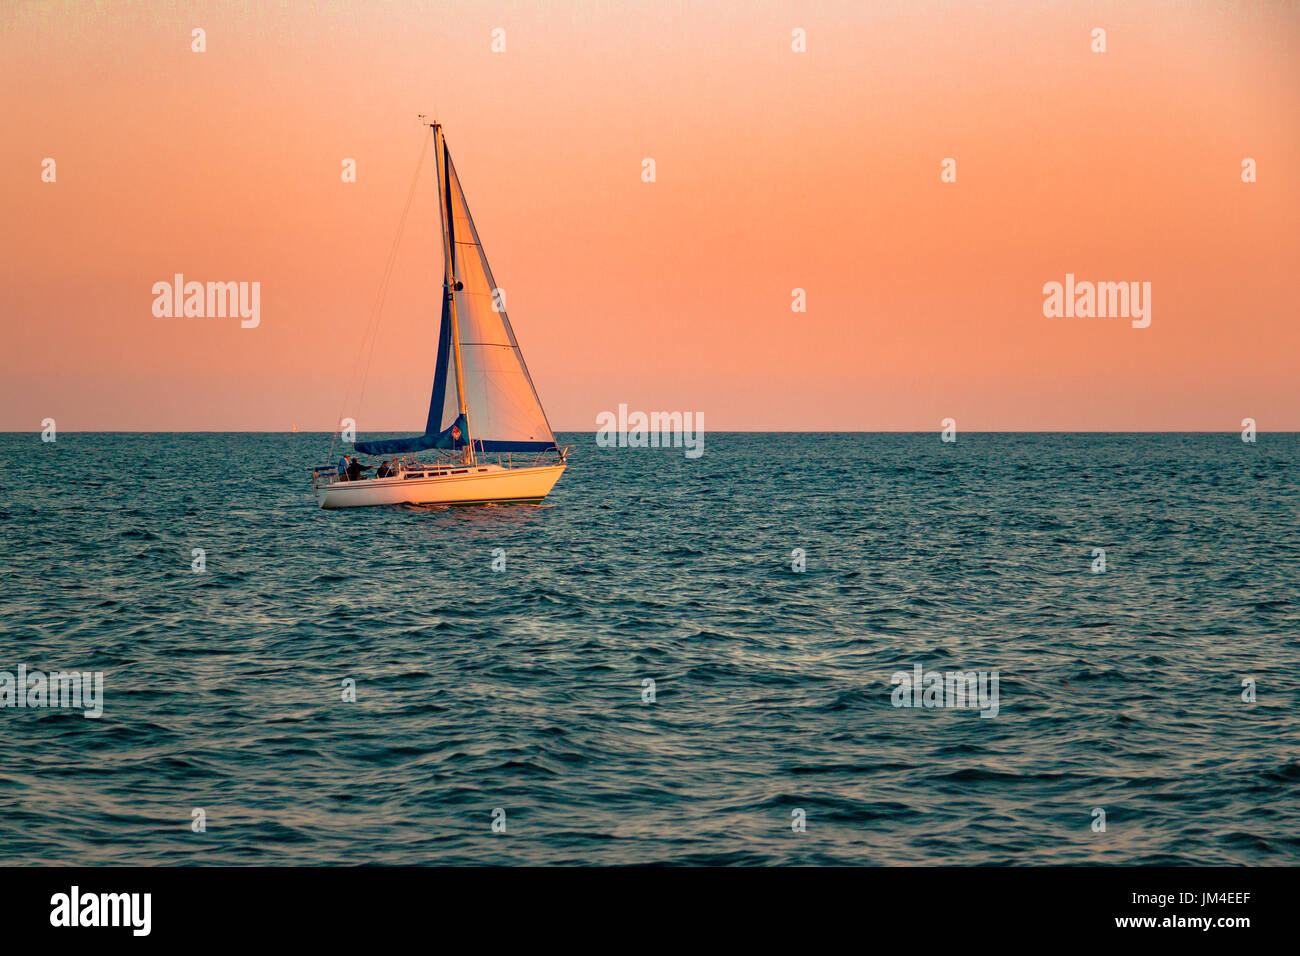 Sailing The Pacific Blue, sunset with calm waters, Dana Point California - Stock Image